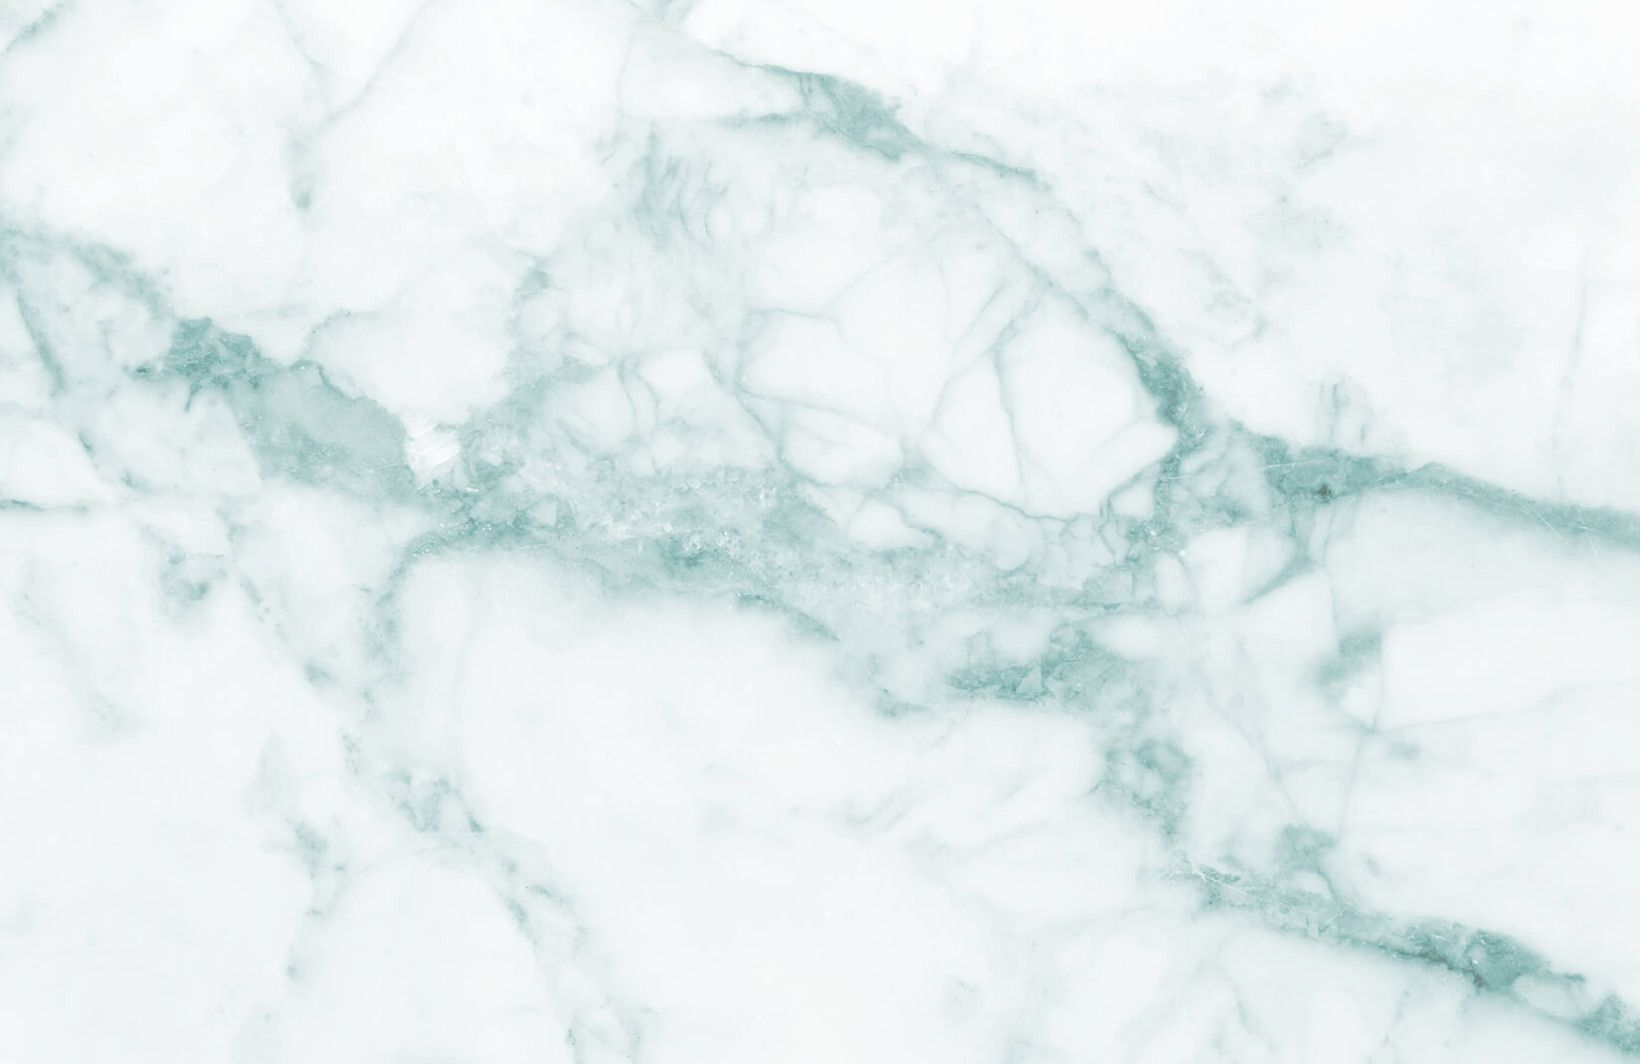 Best Wallpaper Marble Cotton Candy - 99d47e3b0e053a1ff5a41822f7756424  Gallery_597948.jpg